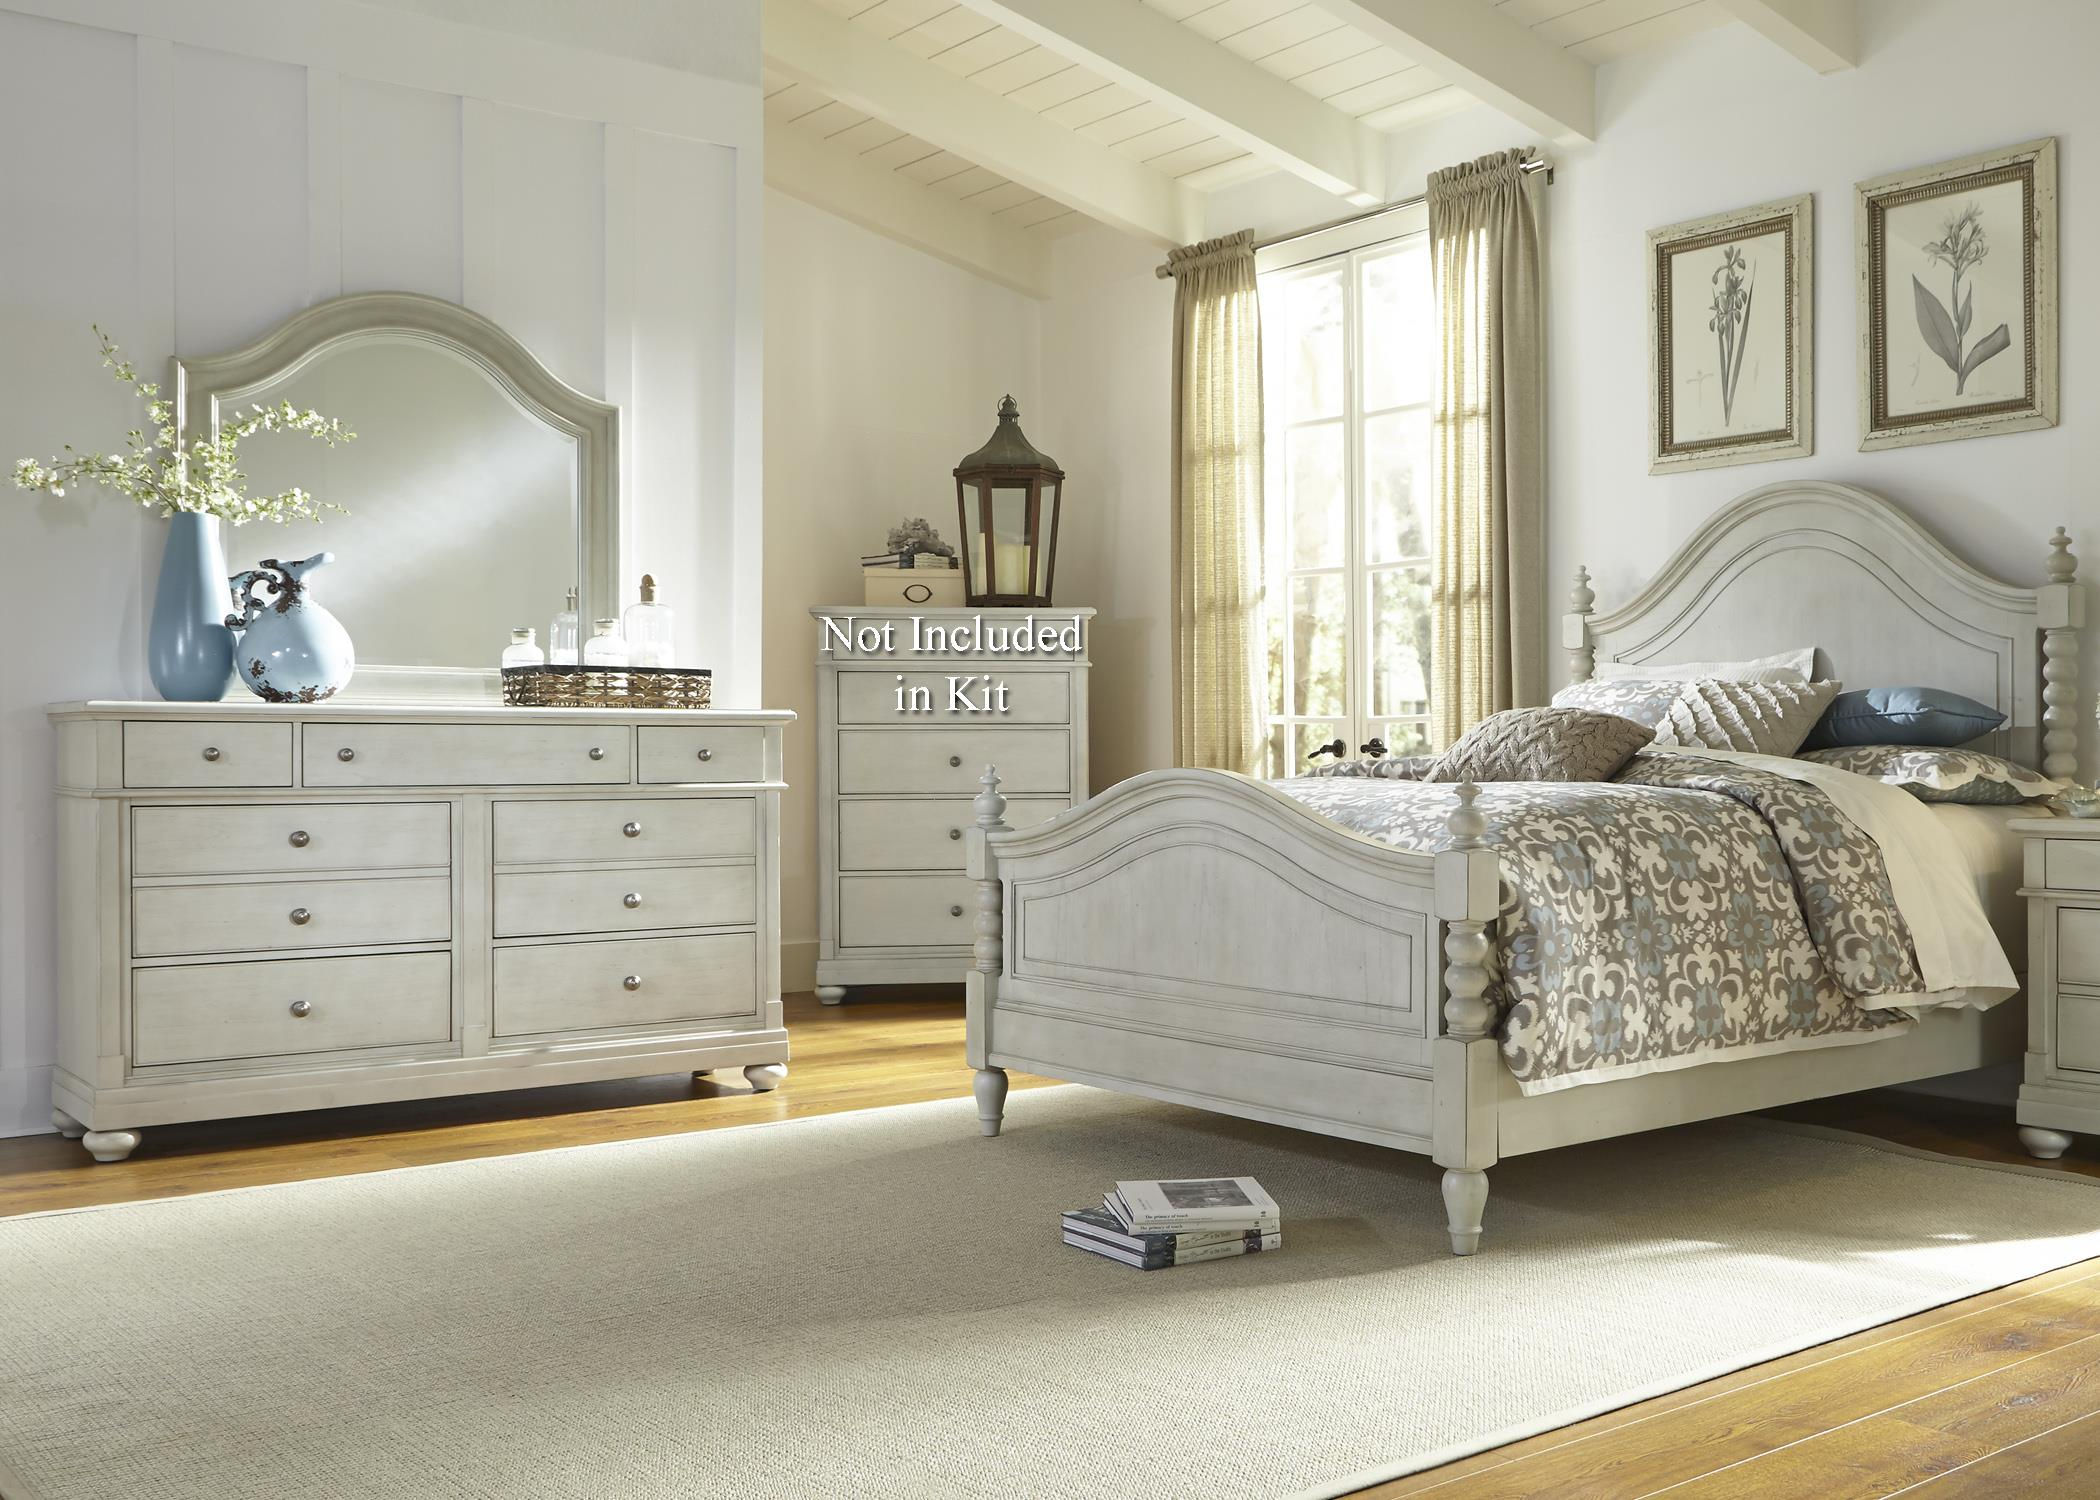 Liberty Furniture Harbor View Queen Bedroom Group - Item Number: 731-BR-QPSDM